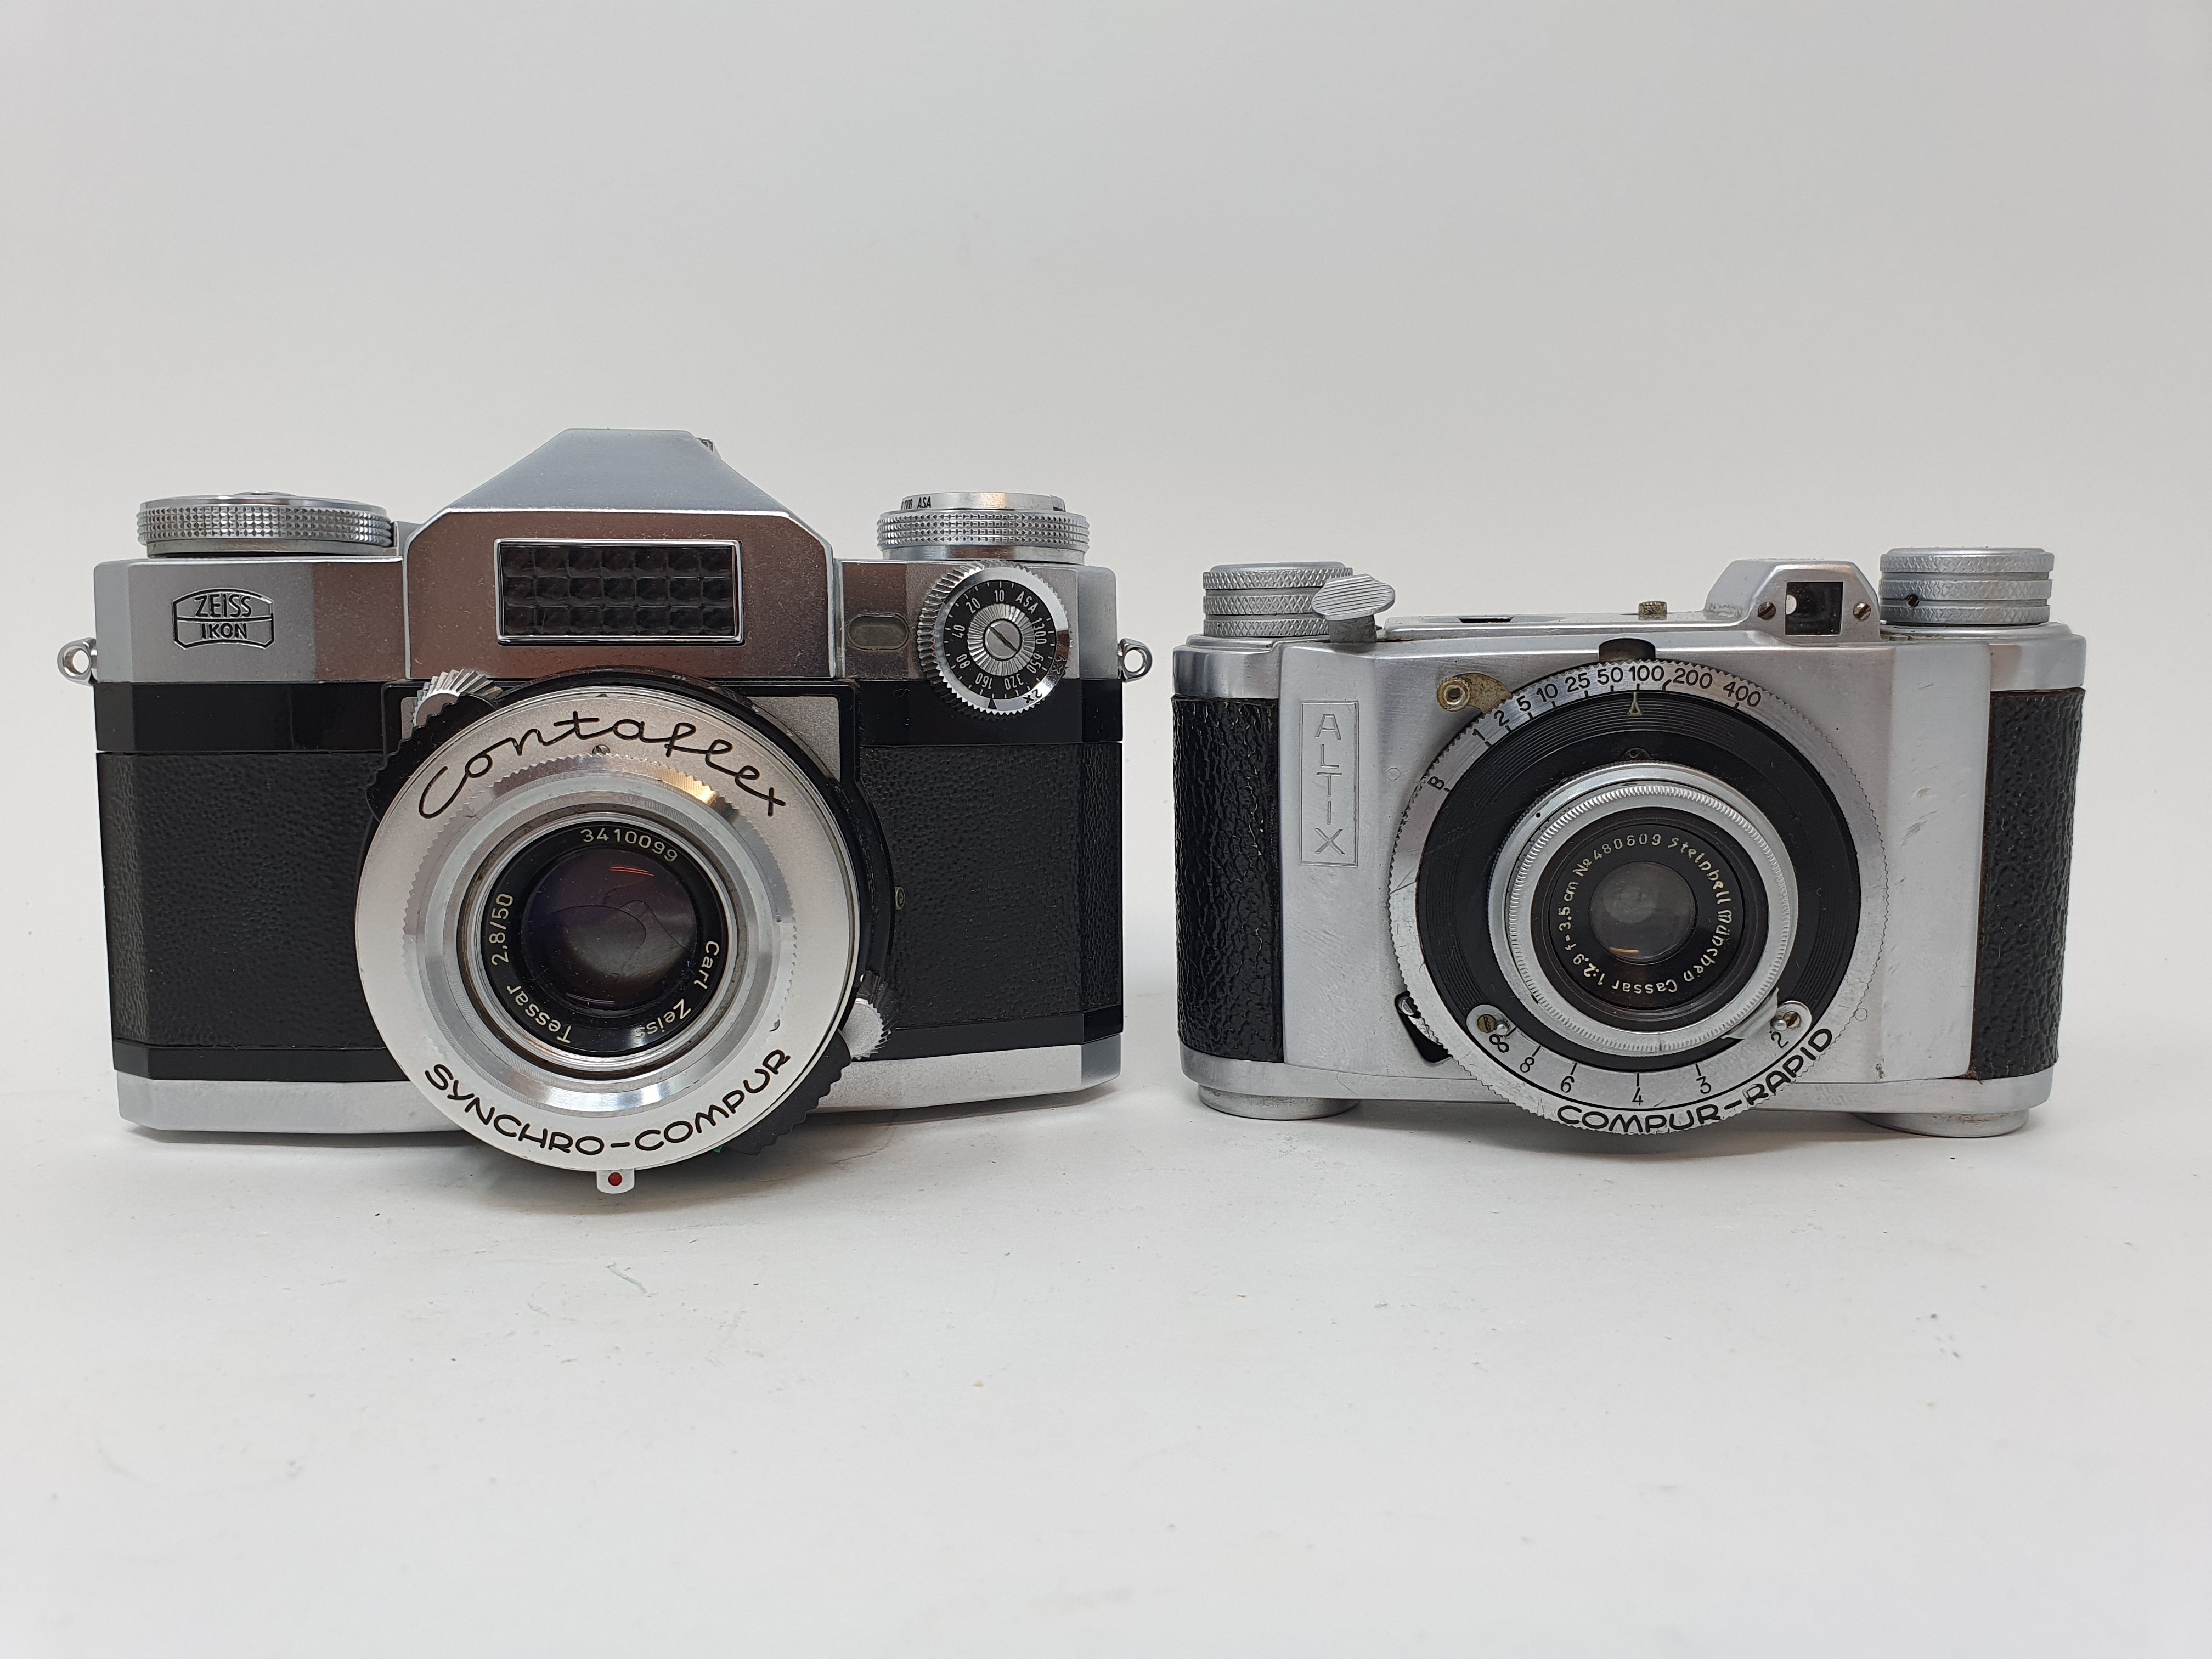 An Altix camera and a Zeiss Ikon camera (2) Provenance: Part of a vast single owner collection of